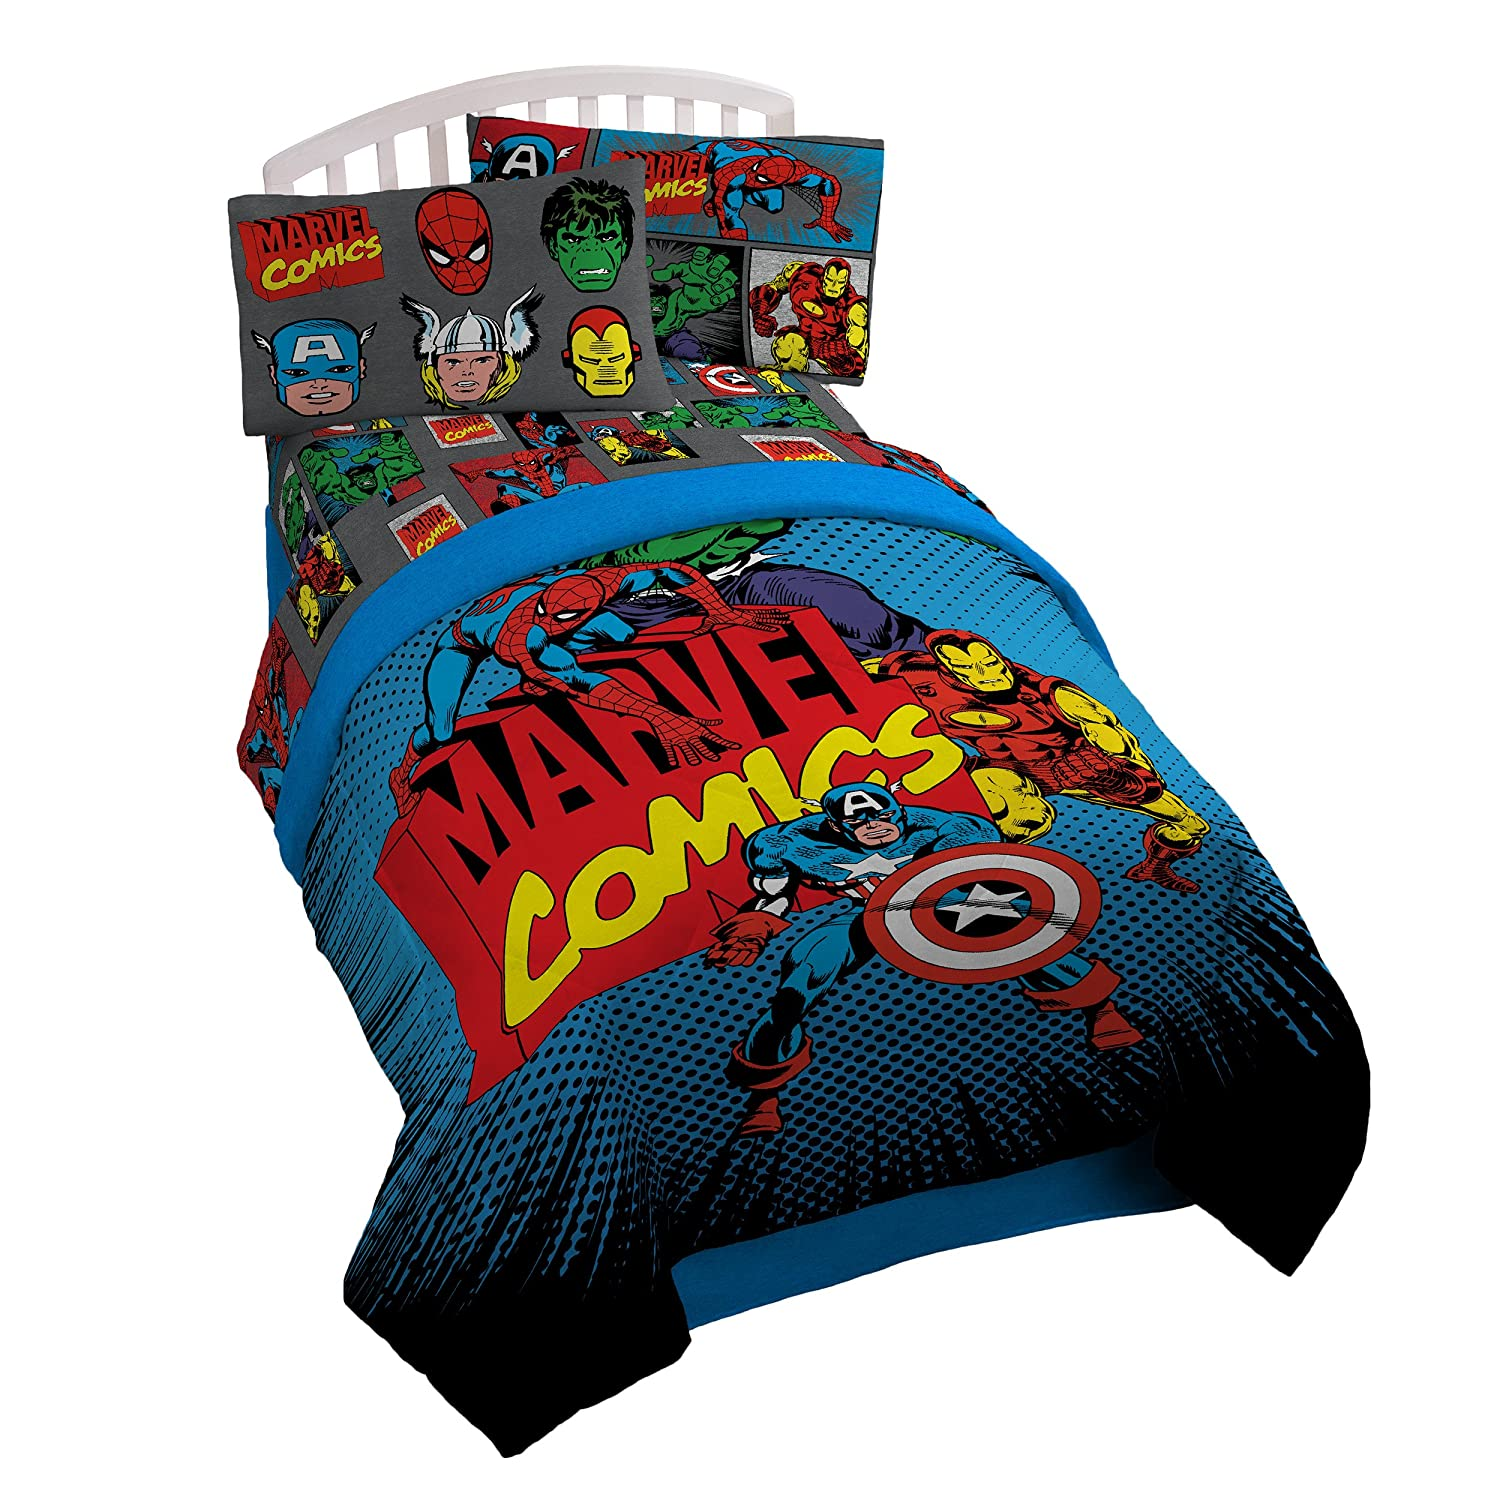 Avengers bedding set twin - Amazon Com Marvel Superheroes Microfiber Reversible Twin Comforter Home Kitchen